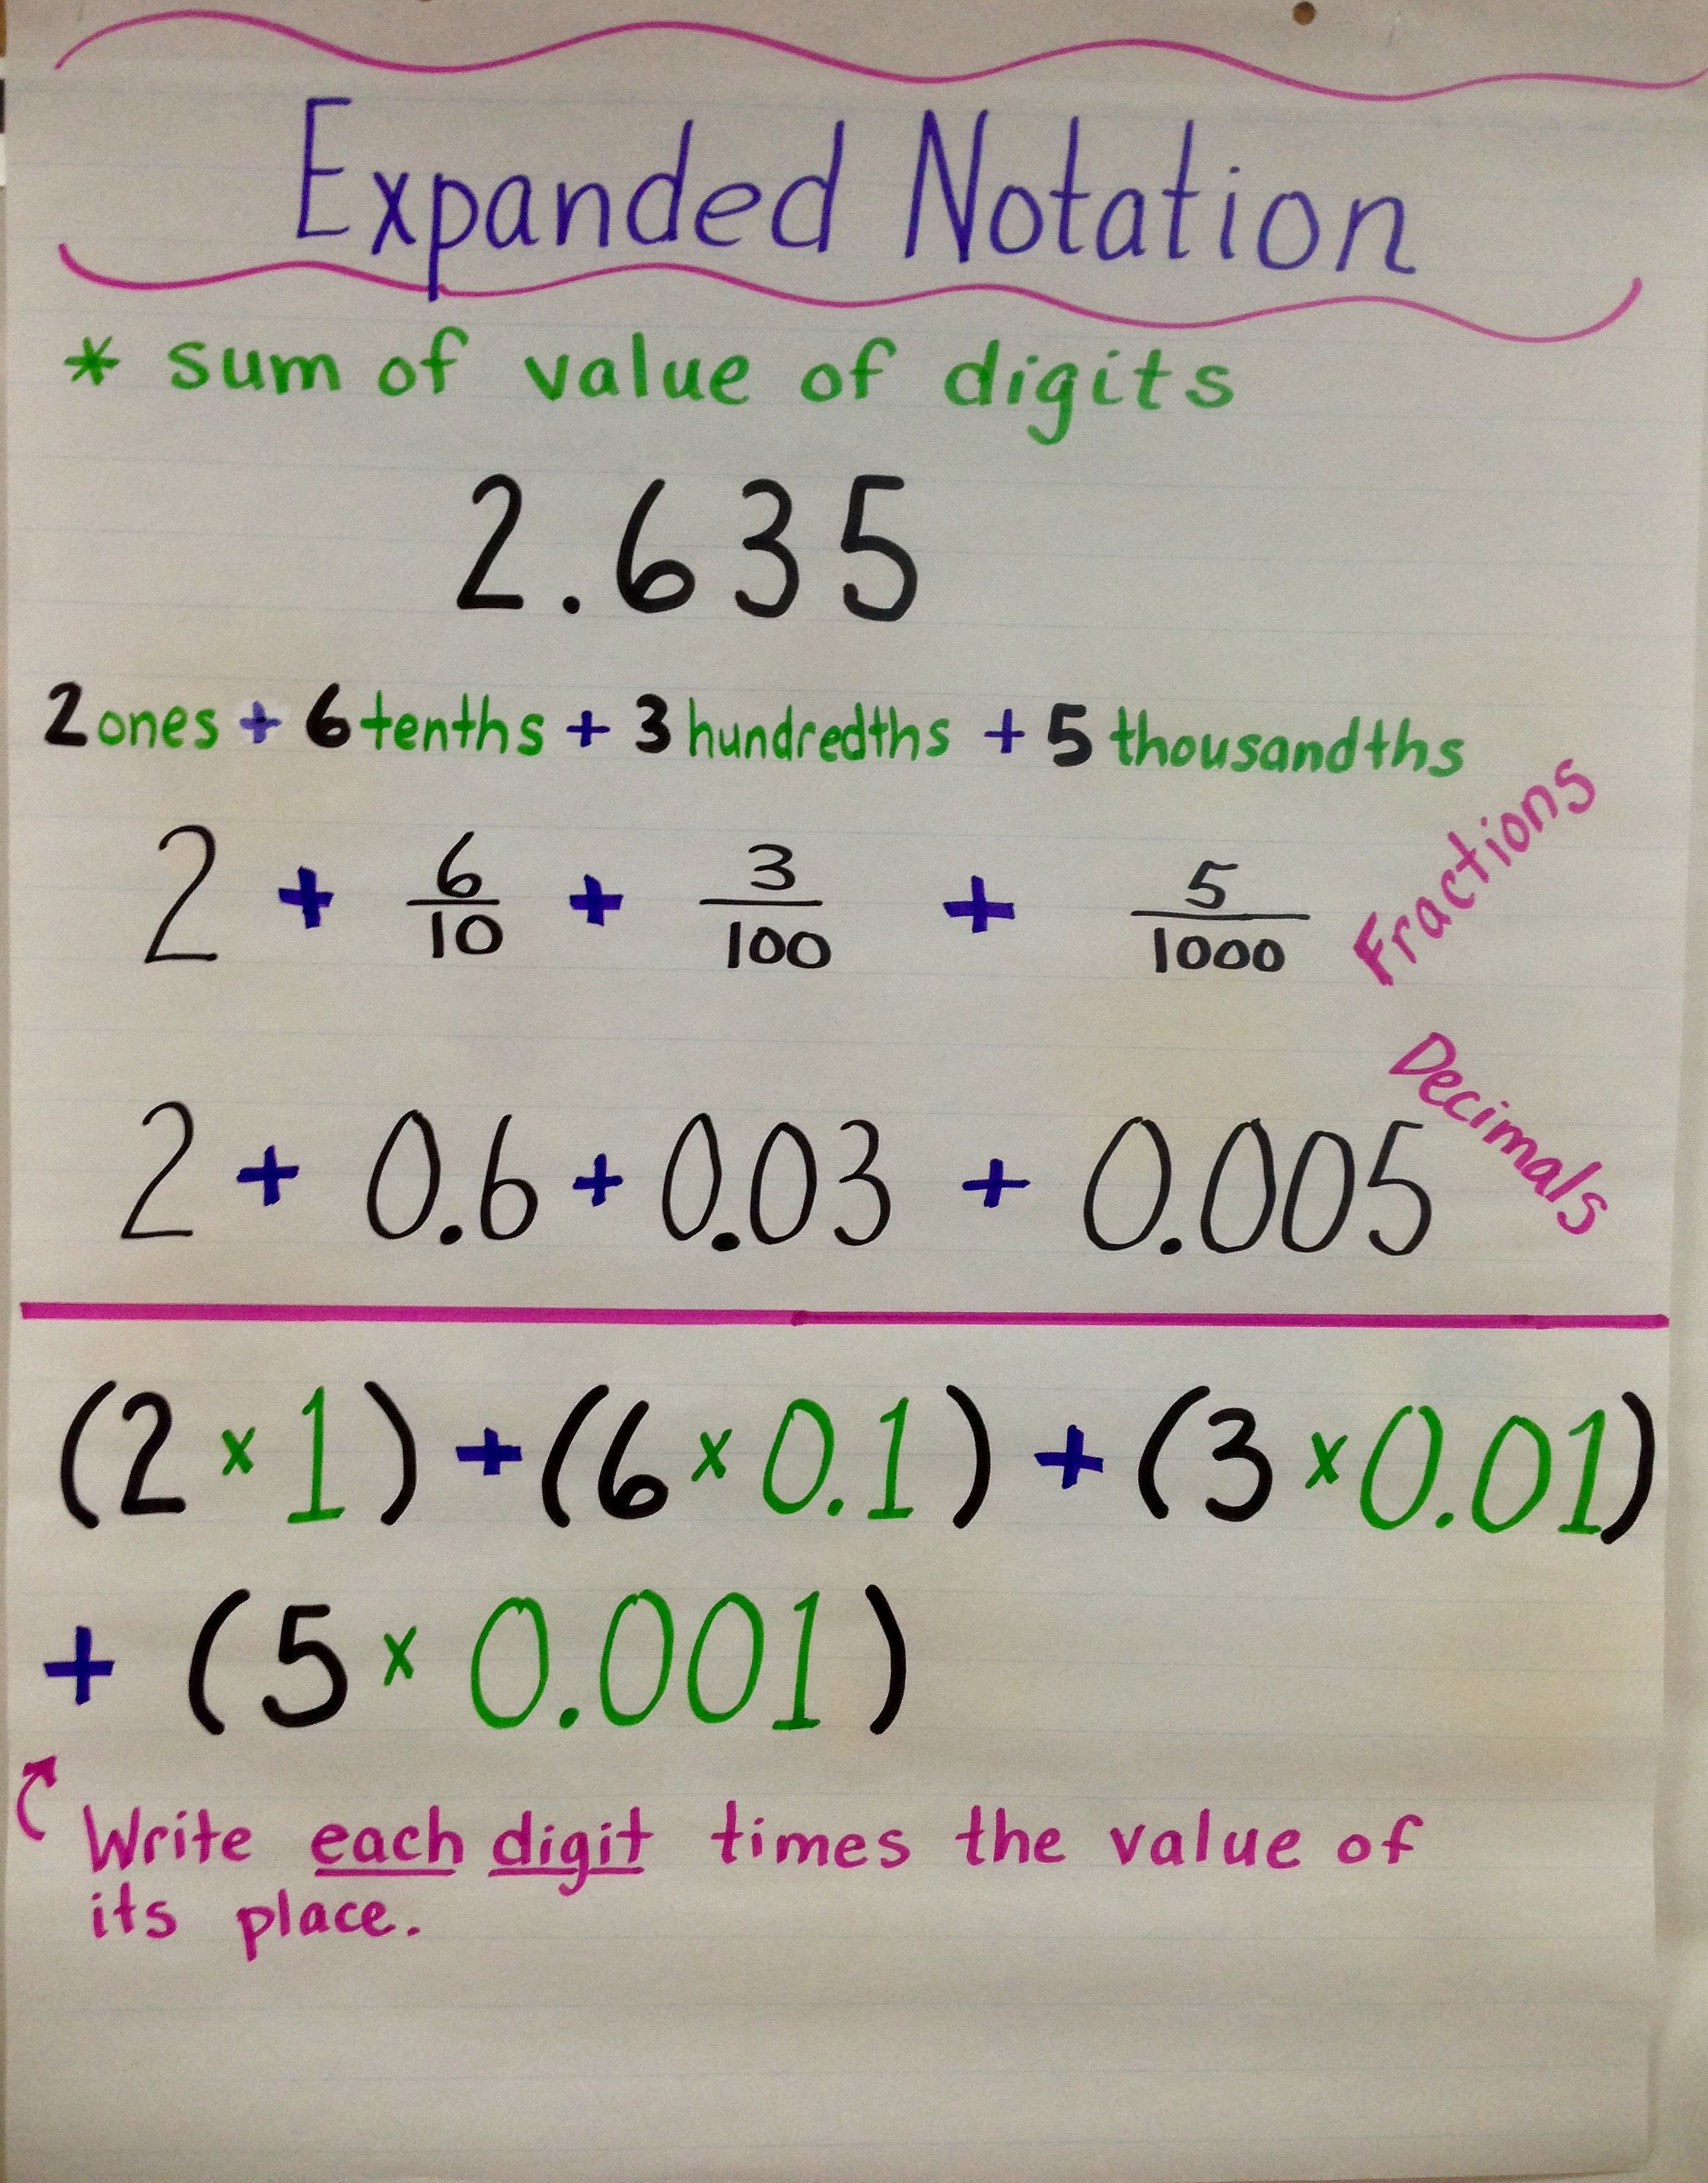 expanded form vs expanded notation anchor chart  Pin by Tammy Ropitzky on anchor charts | Math anchor charts ...